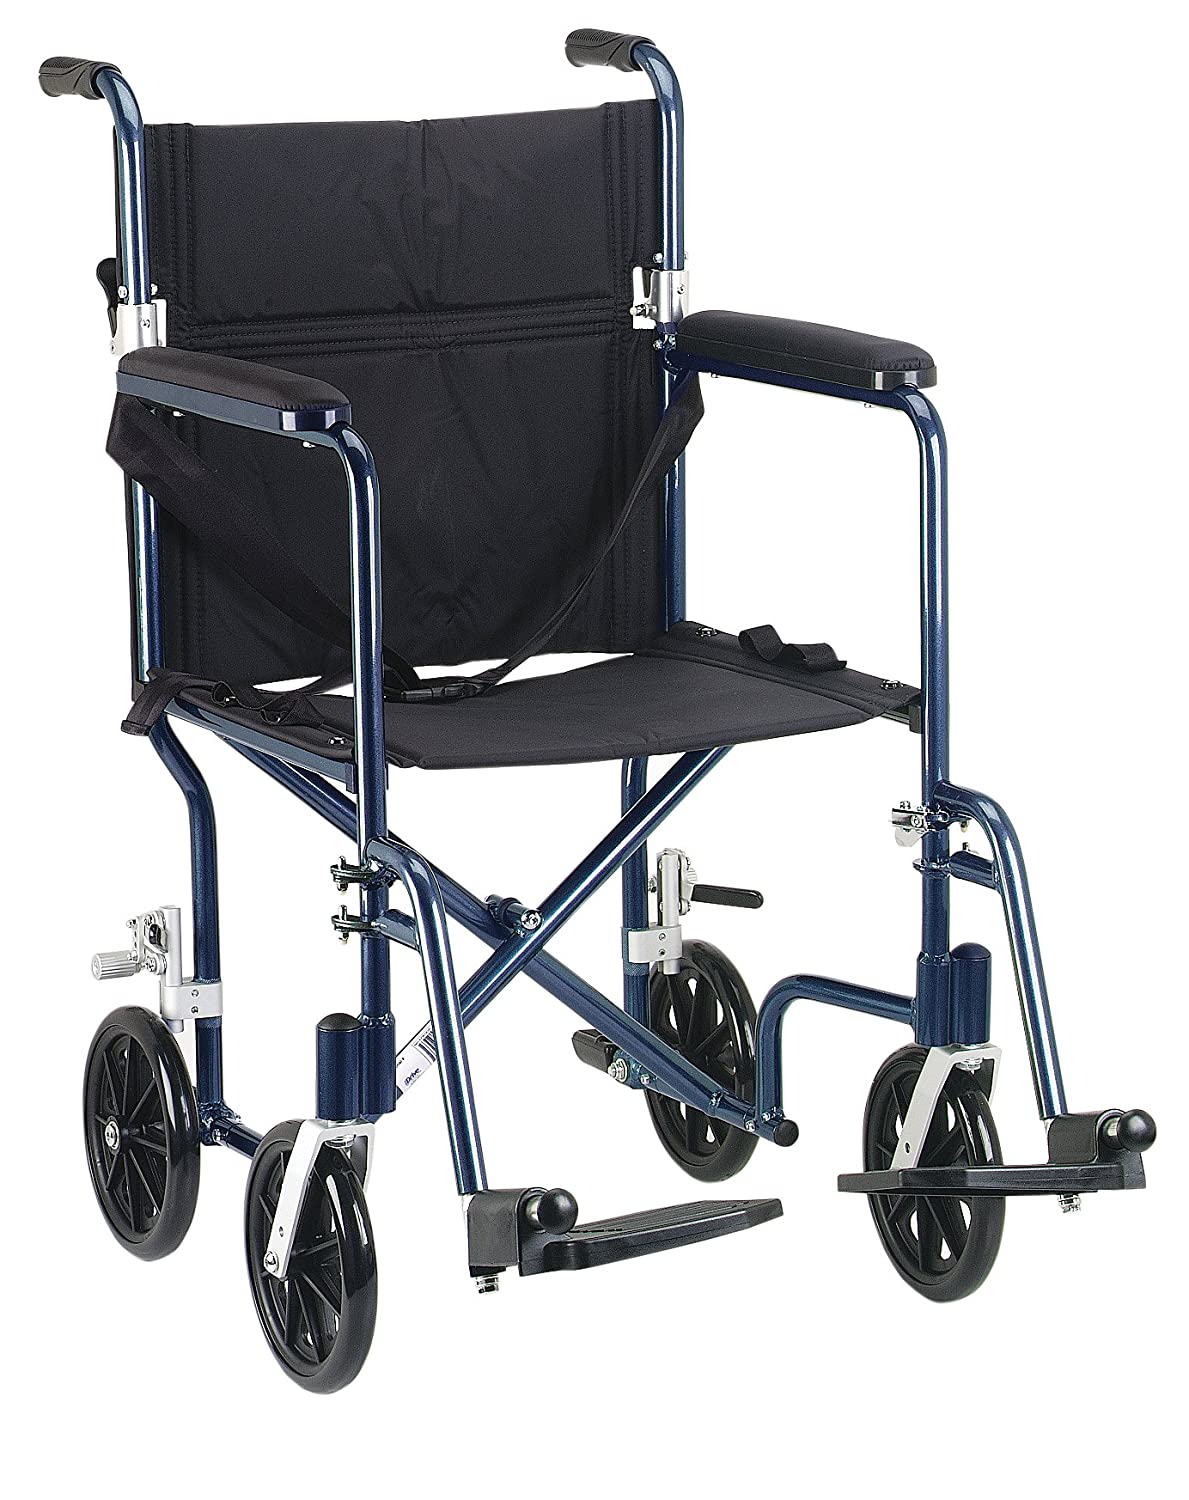 transport product chair able wheelchairs bariatric archives r chairs support category healthcare services steel